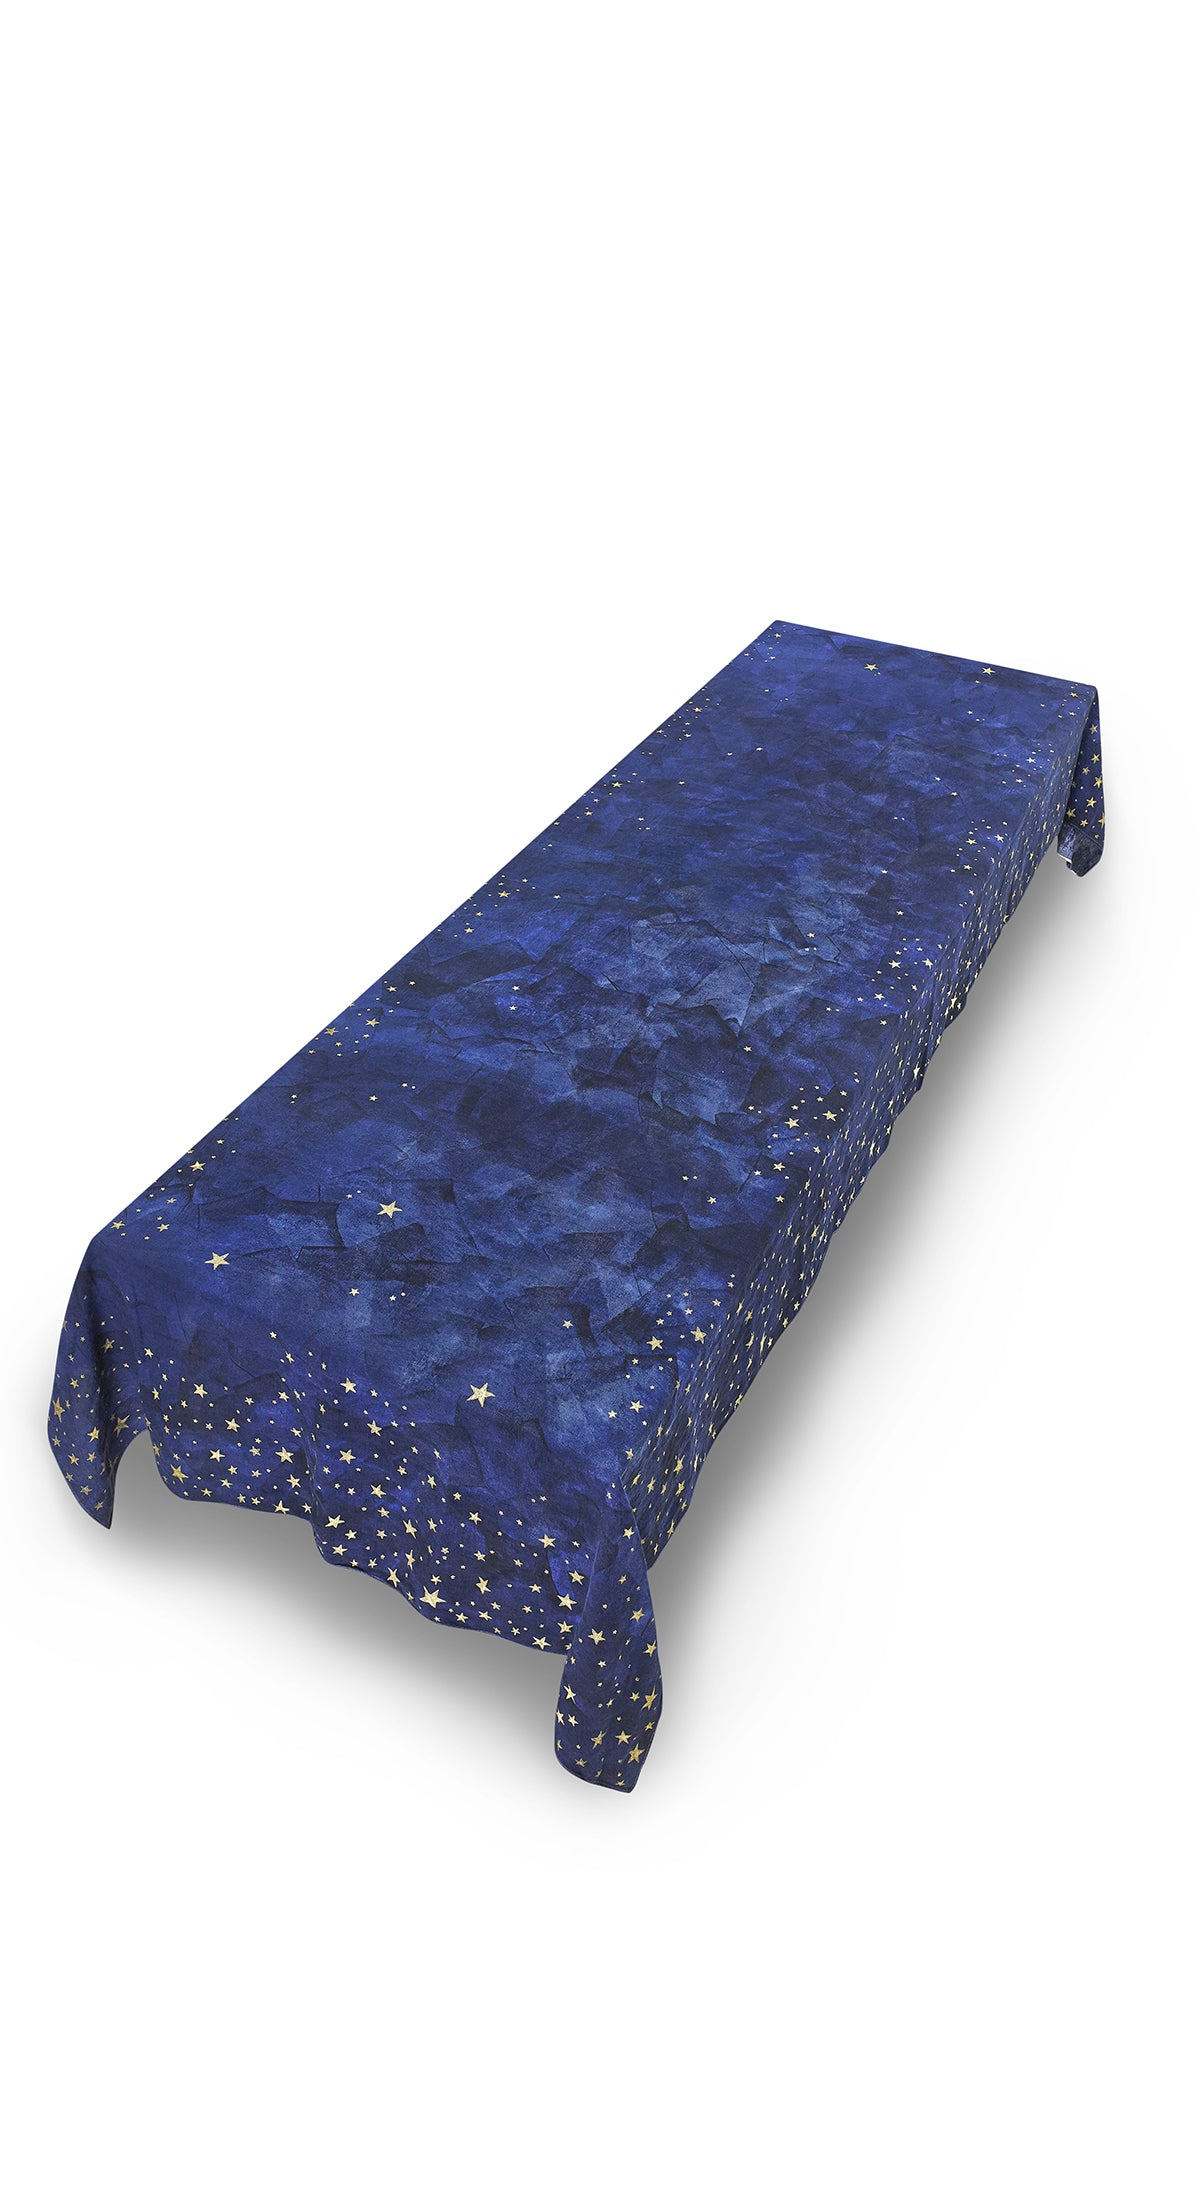 Falling Stars Linen Tablecloth in Ink Blue with Gold Stars